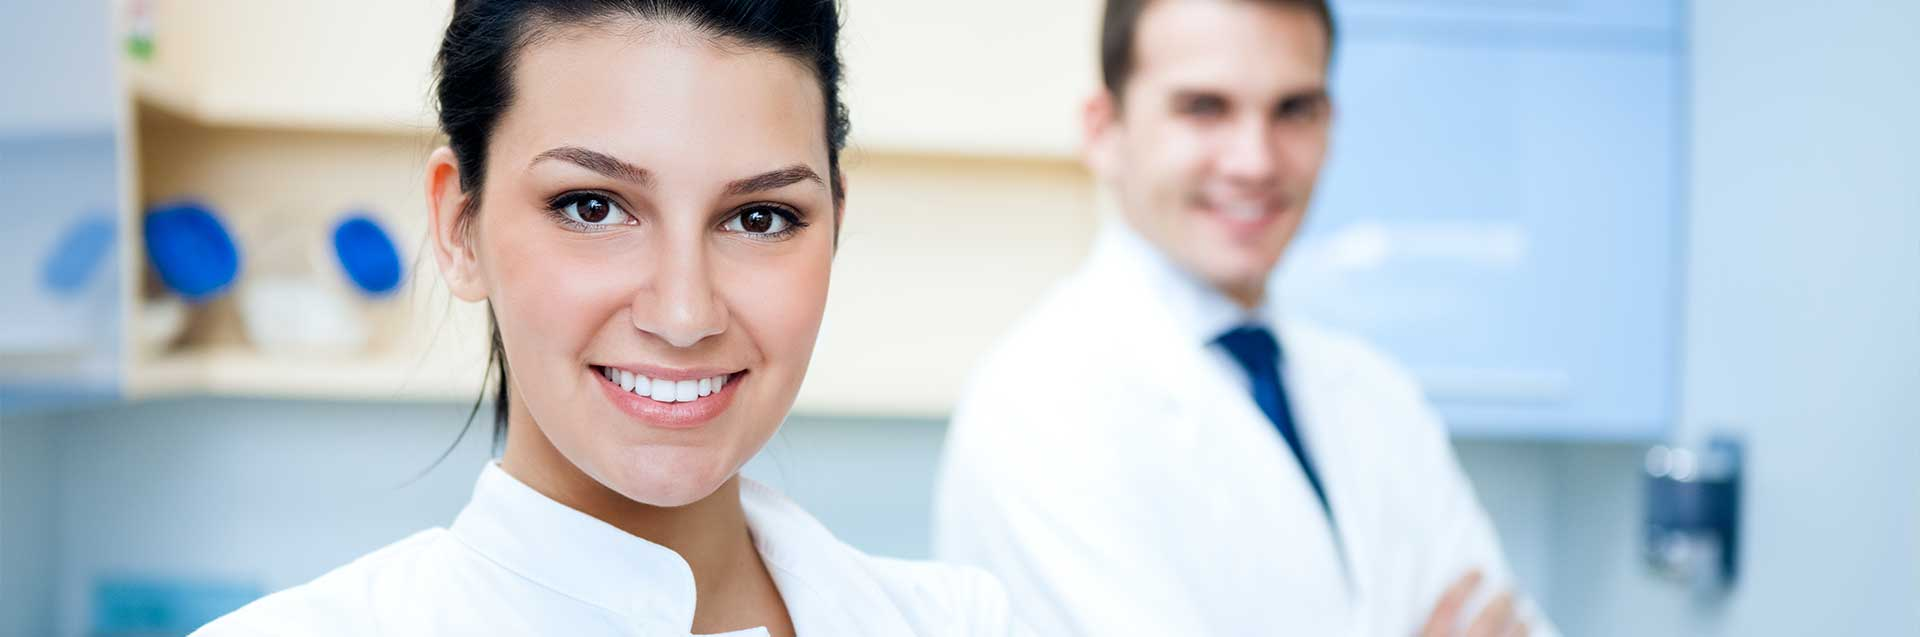 A female dentist and a male smiling while looking at the camera at their dental office